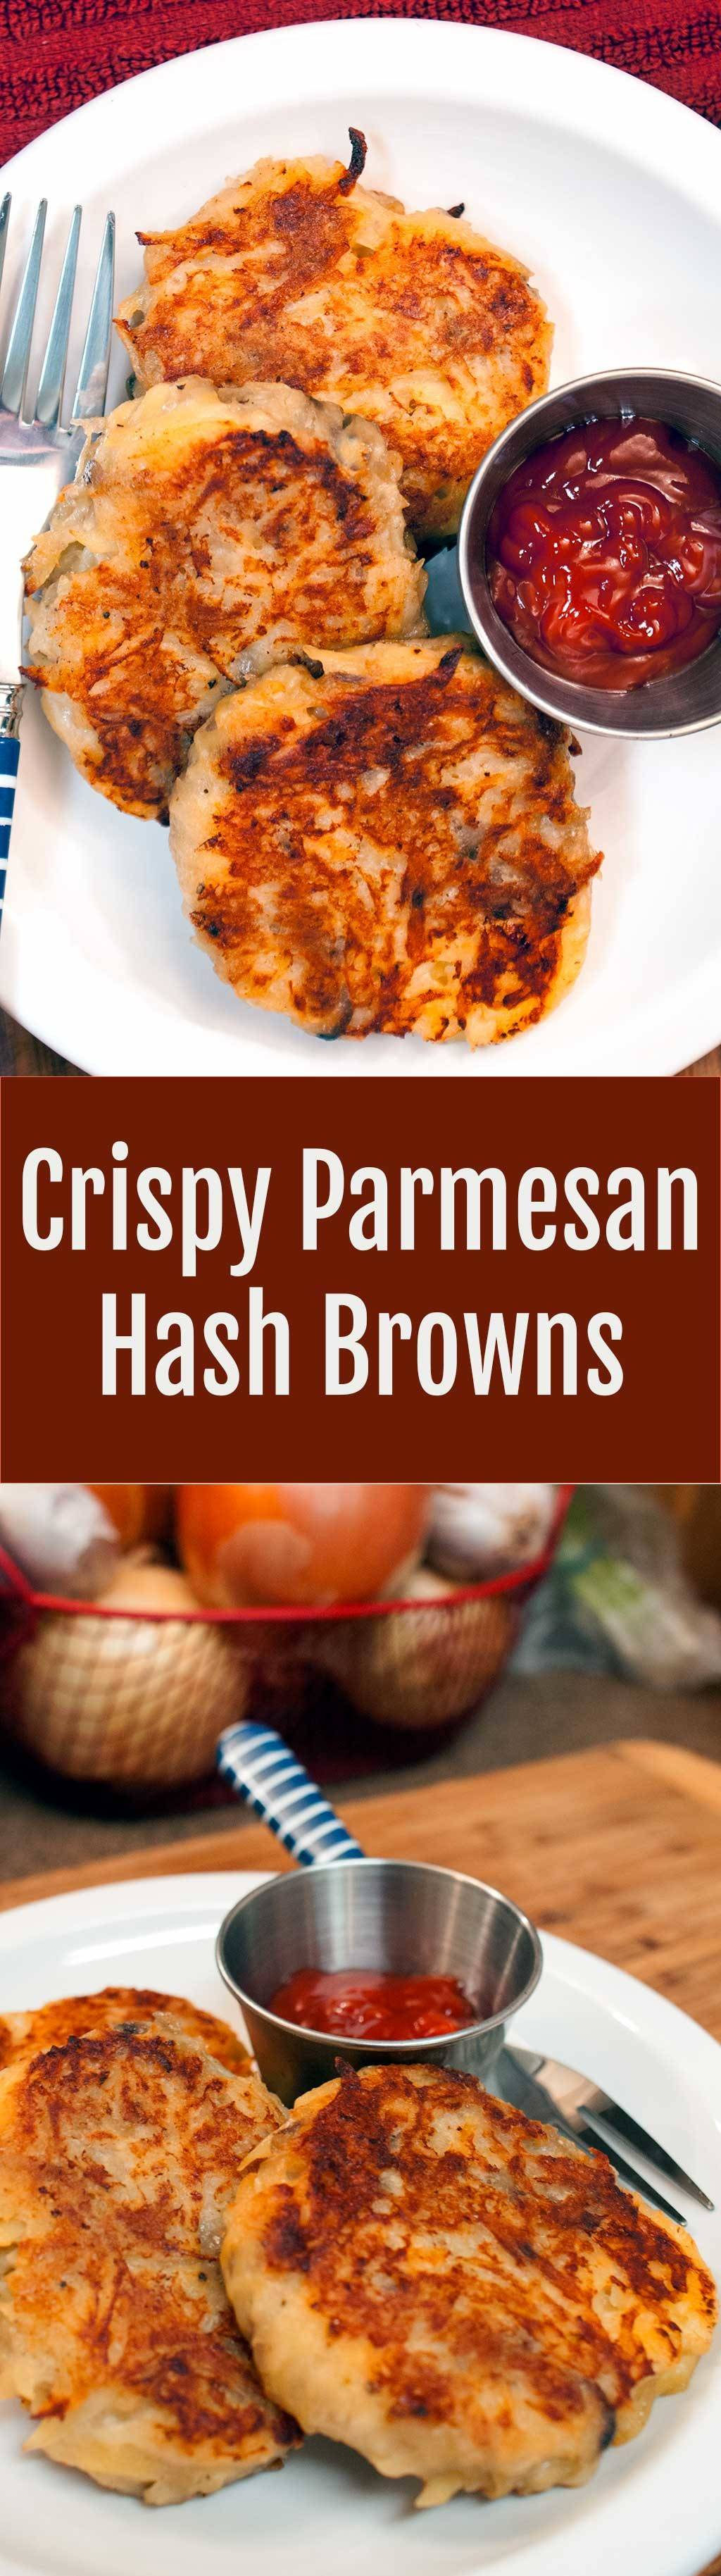 Crispy Restaurant Style Parmesan hash Browns. - Crispy on the outside and fluffy on the inside. (Sort of like latkes, but different.)